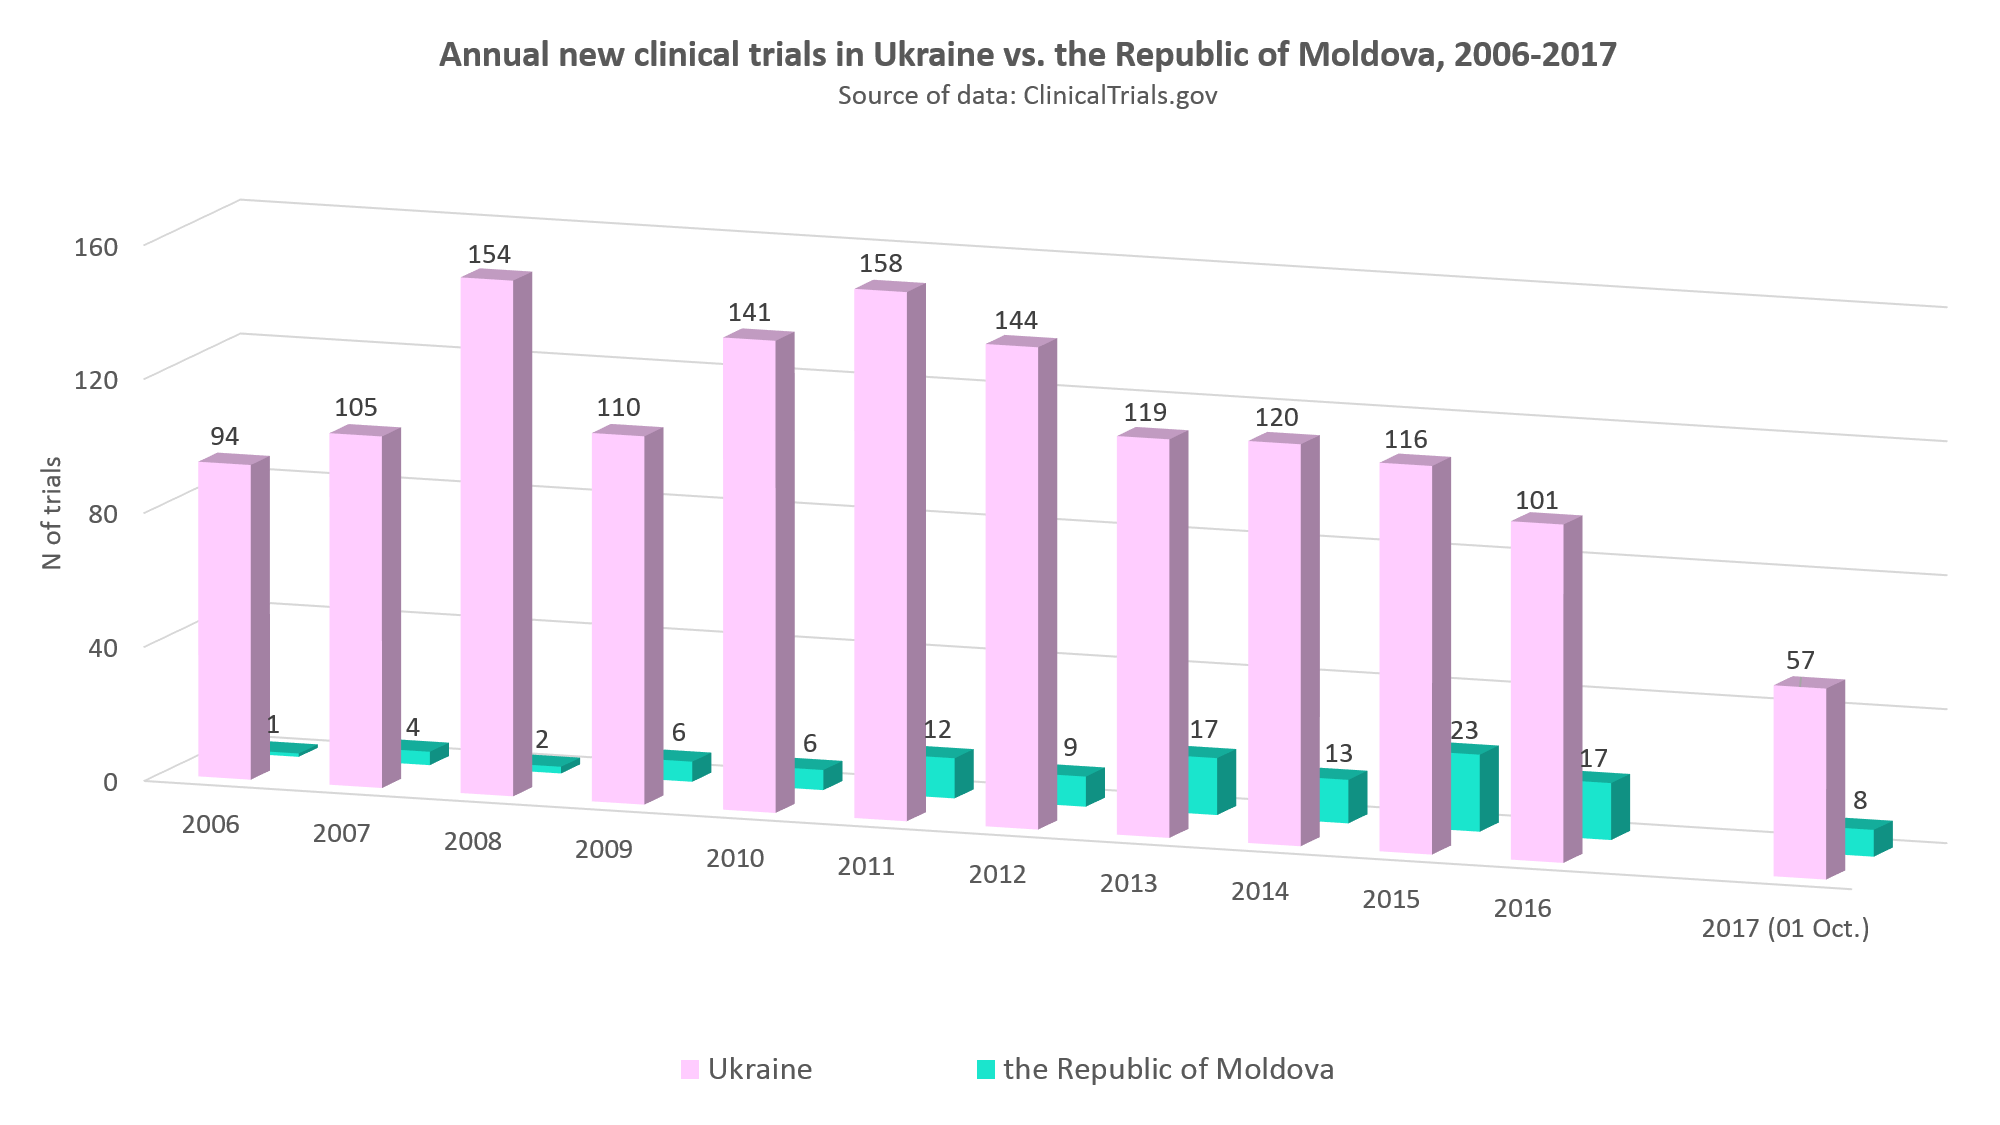 Annual new clinical trials in Ukraine vs. the Republic of Moldova, 2006-2017